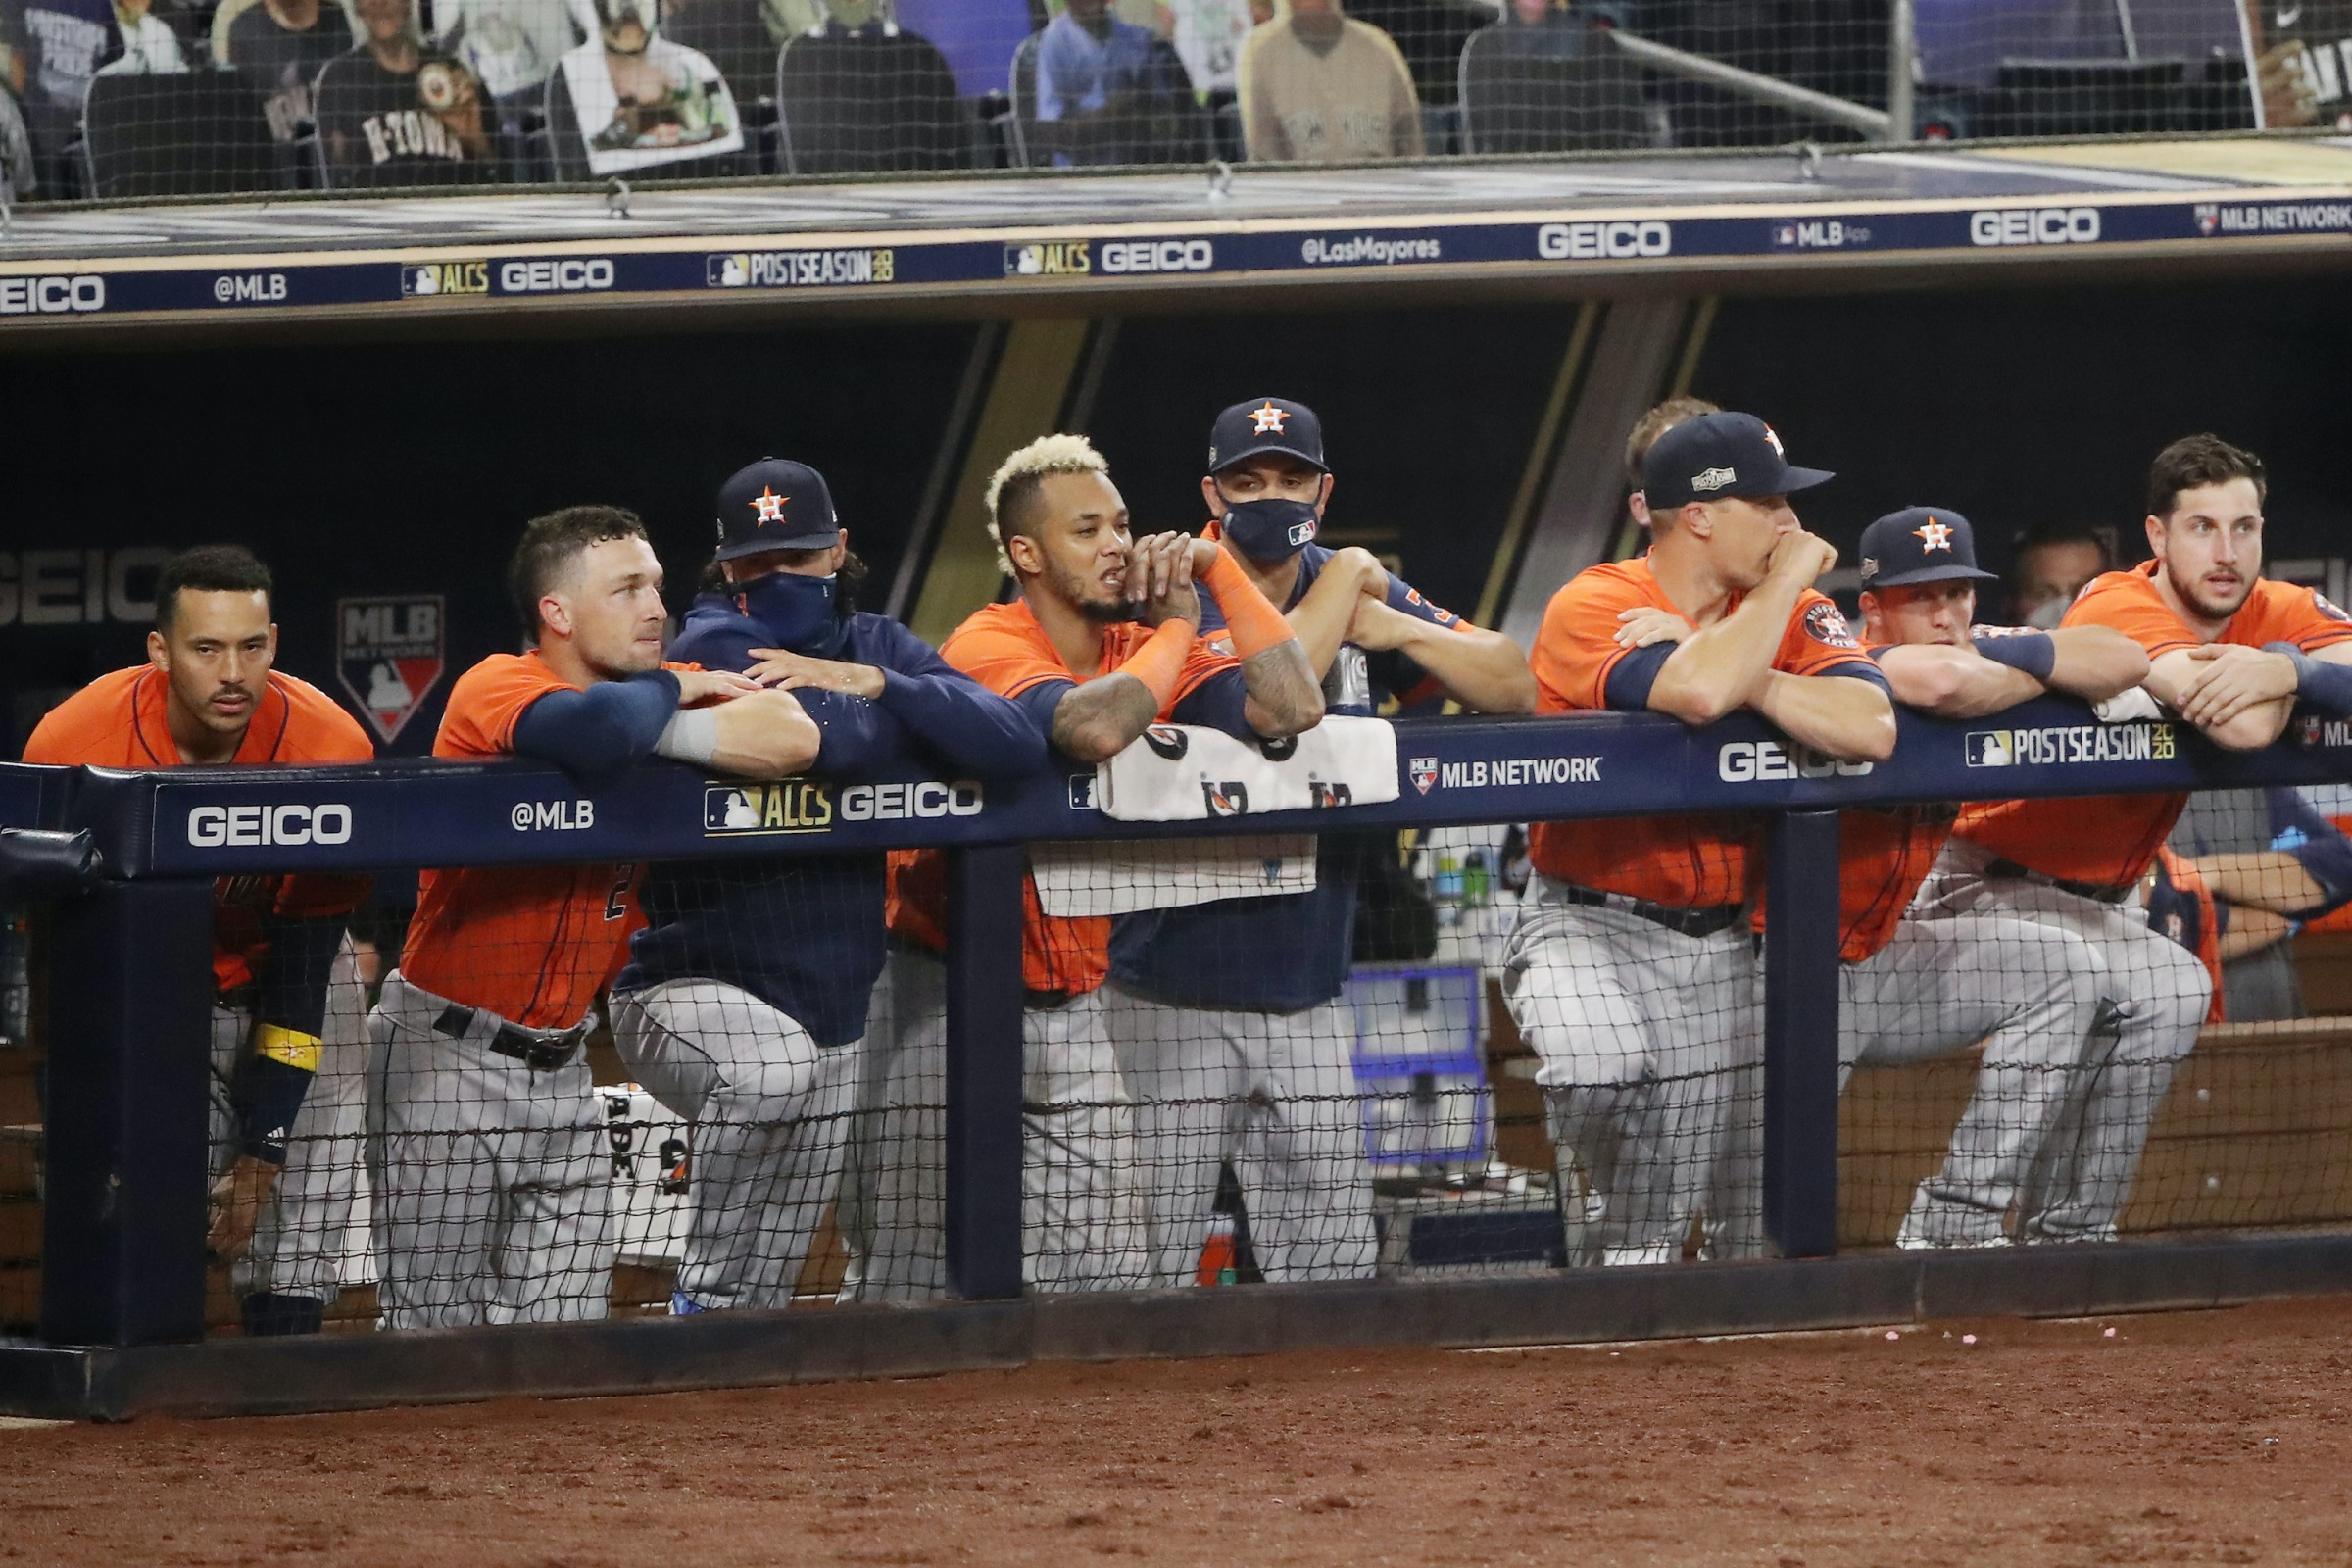 Houston Astros players sit in the dugout during Game 7 of the ALCS.